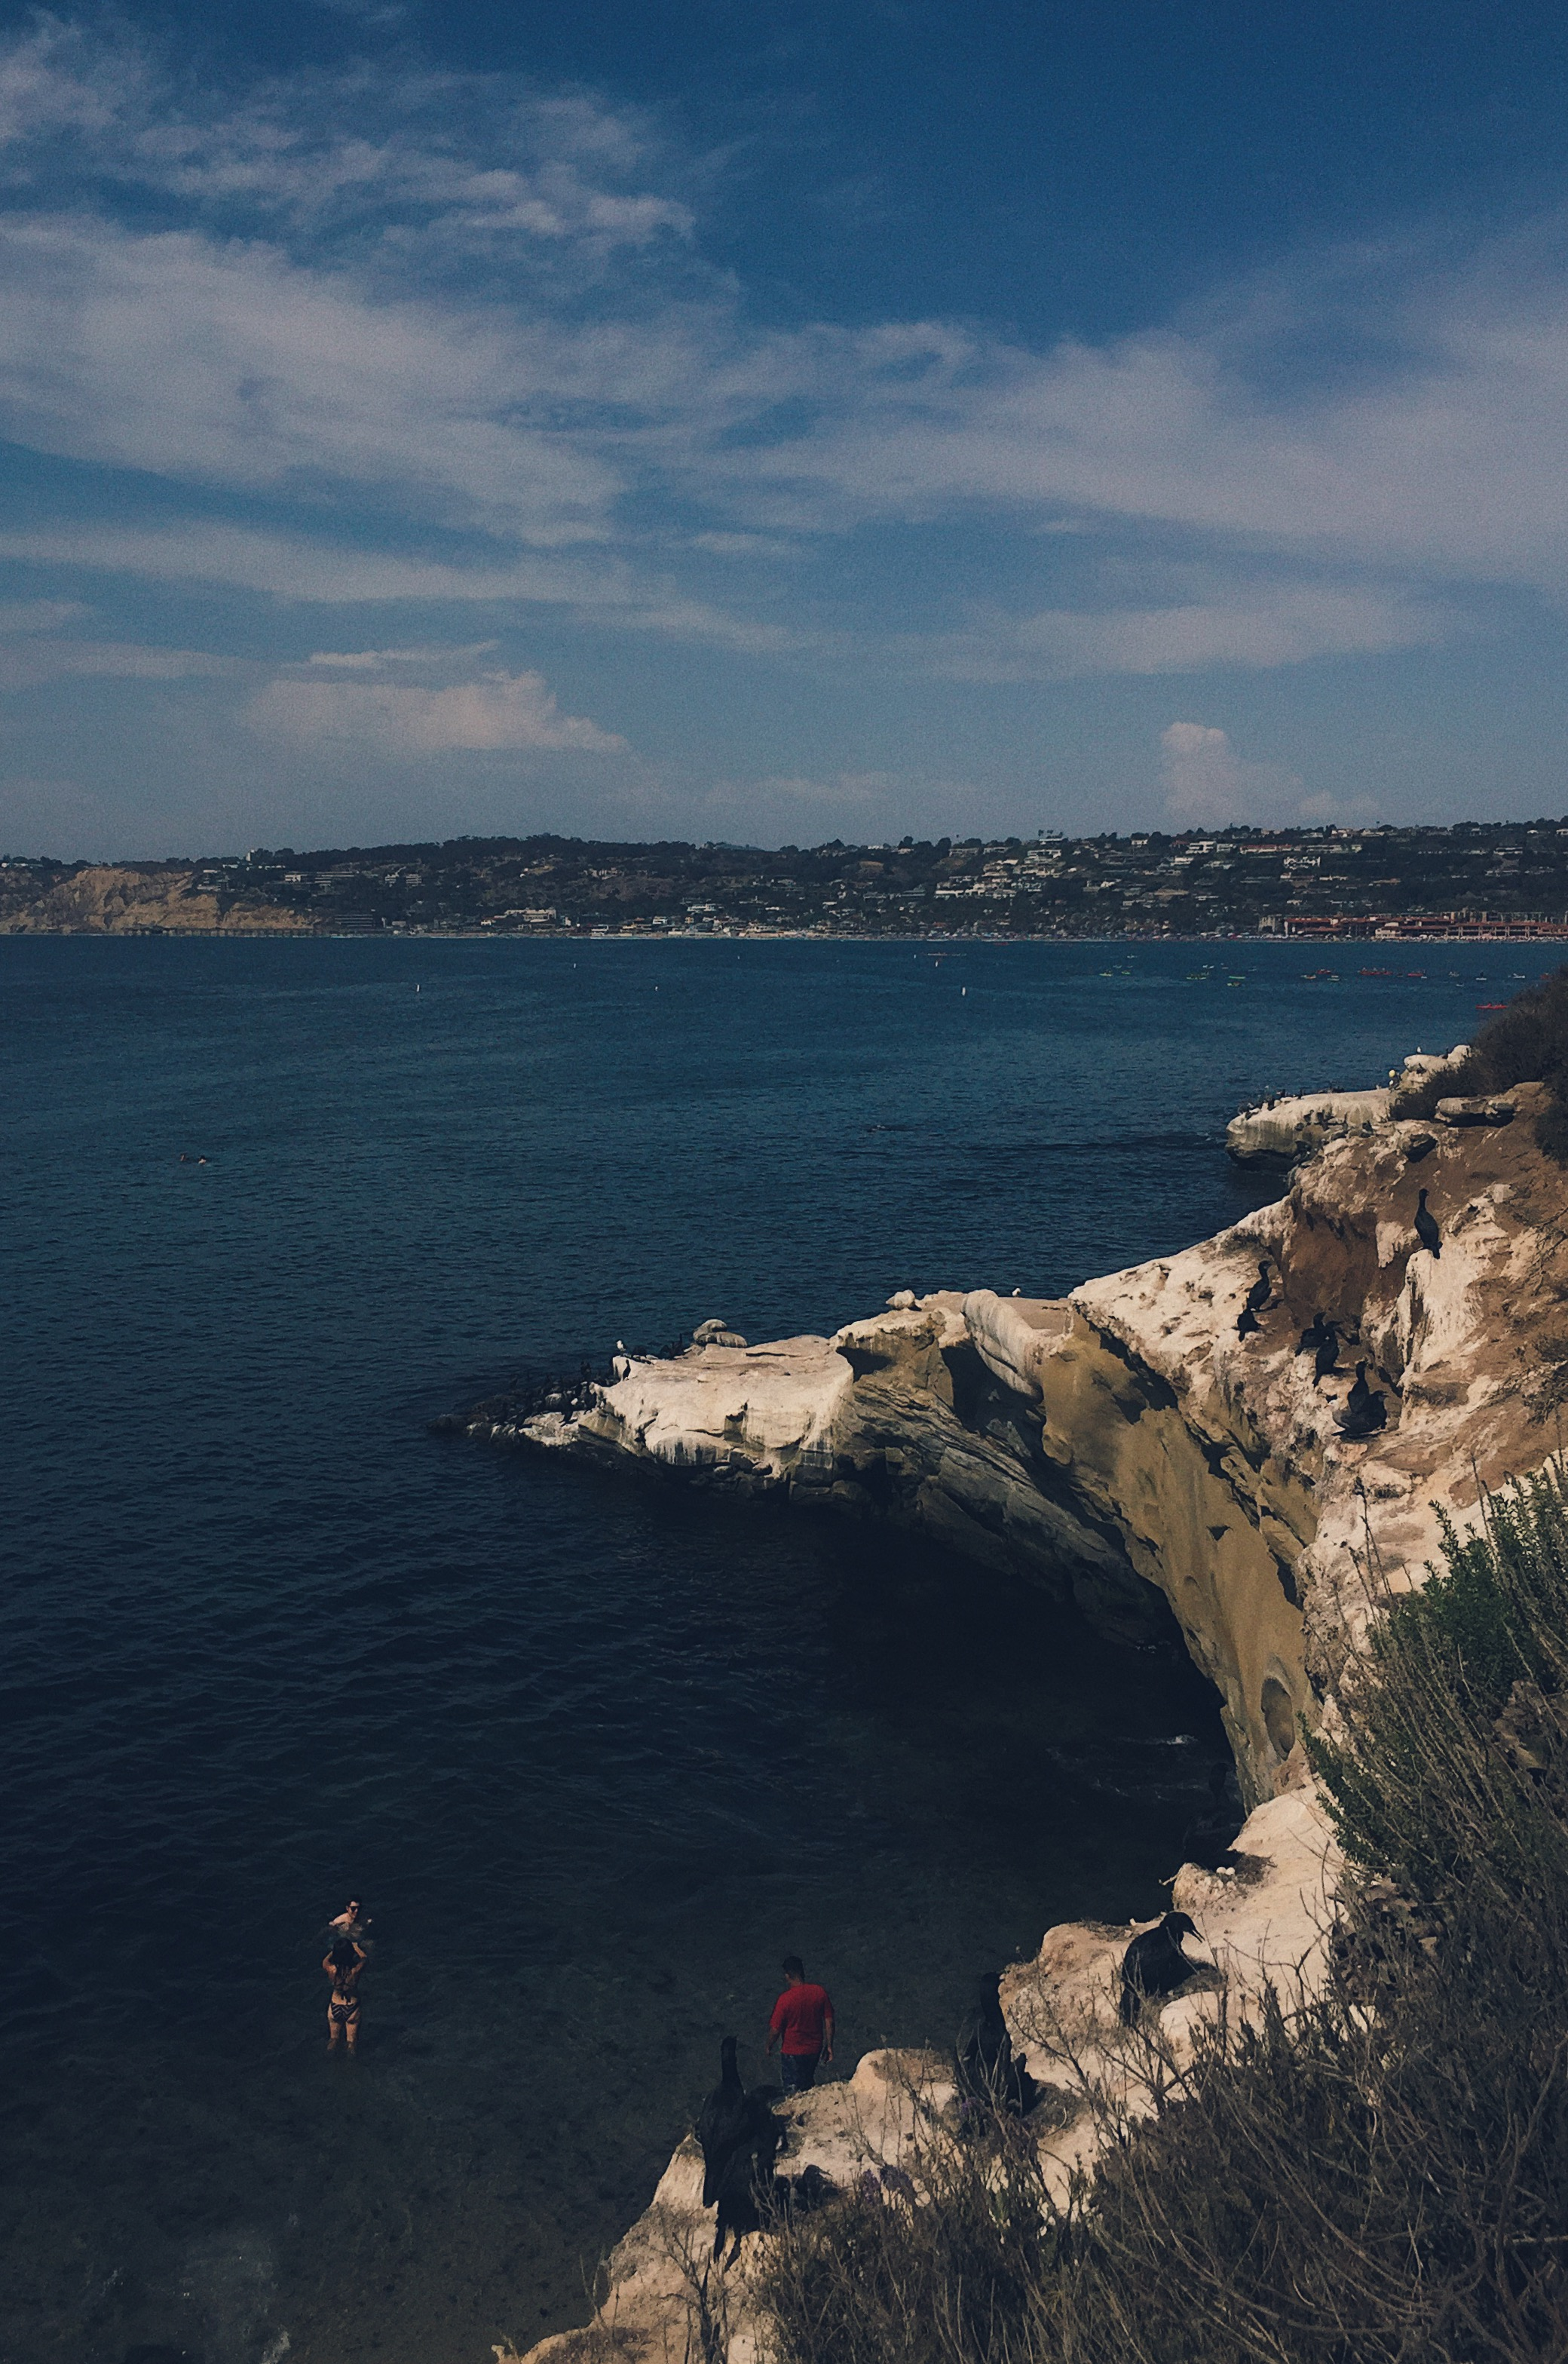 View of the rocky shore from above